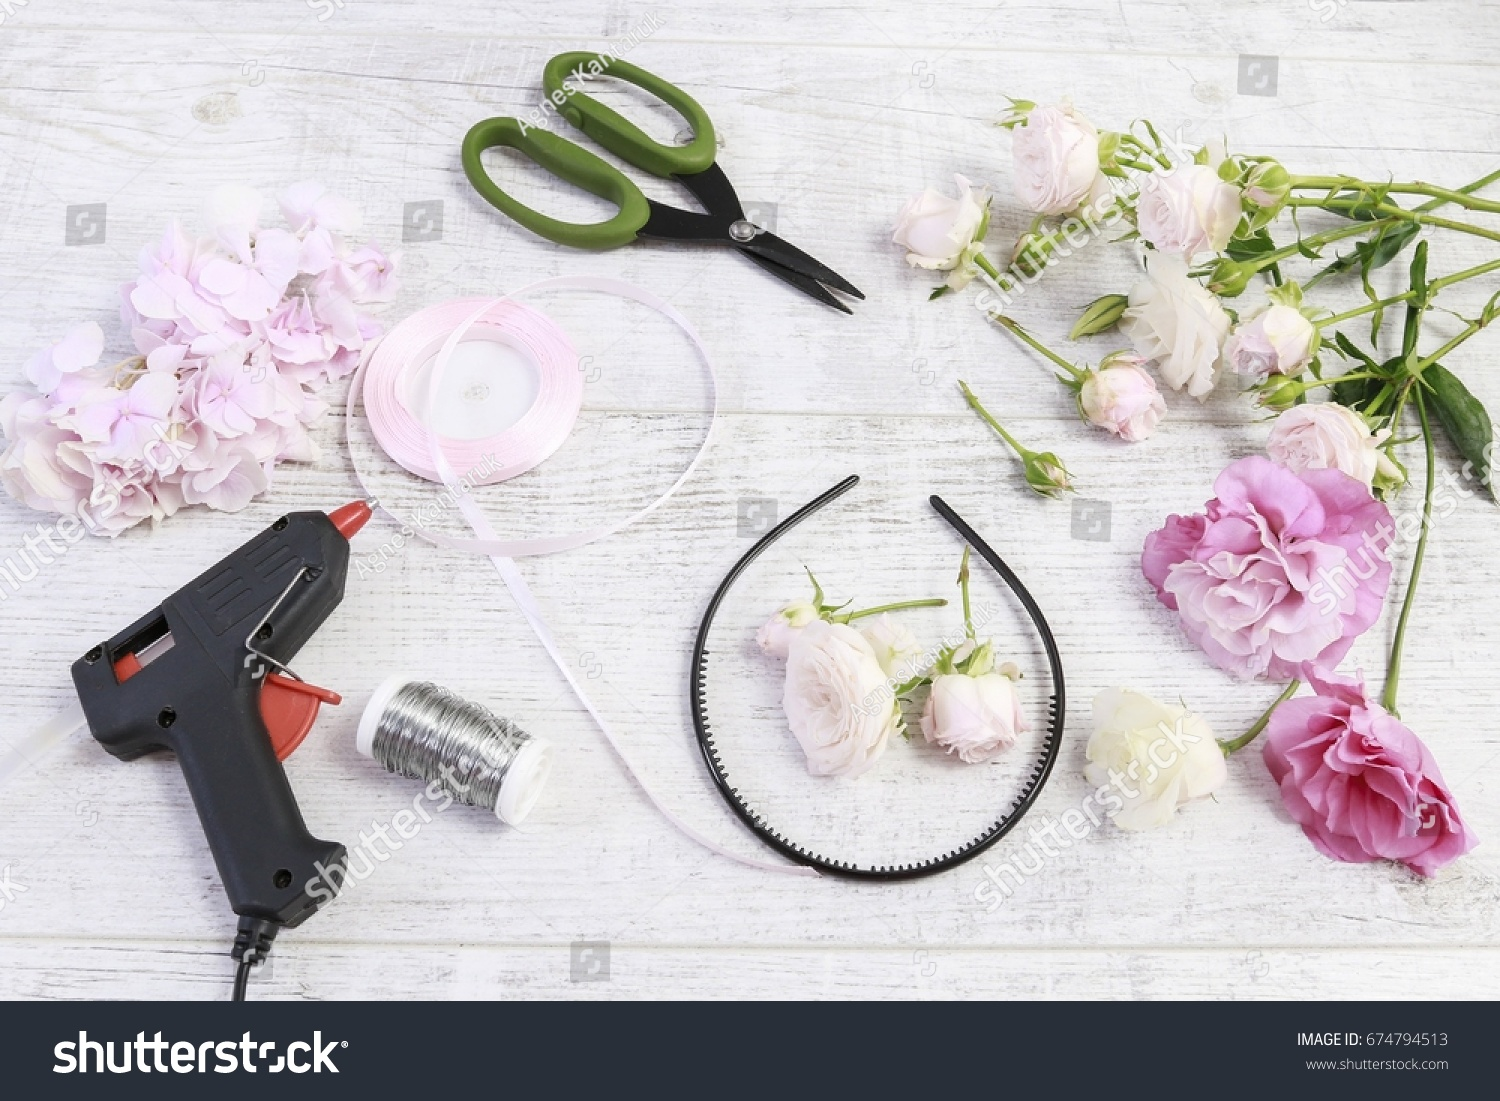 Florist work how make flower crown stock photo edit now shutterstock florist at work how to make flower crown with roses eustoma lisianthus izmirmasajfo